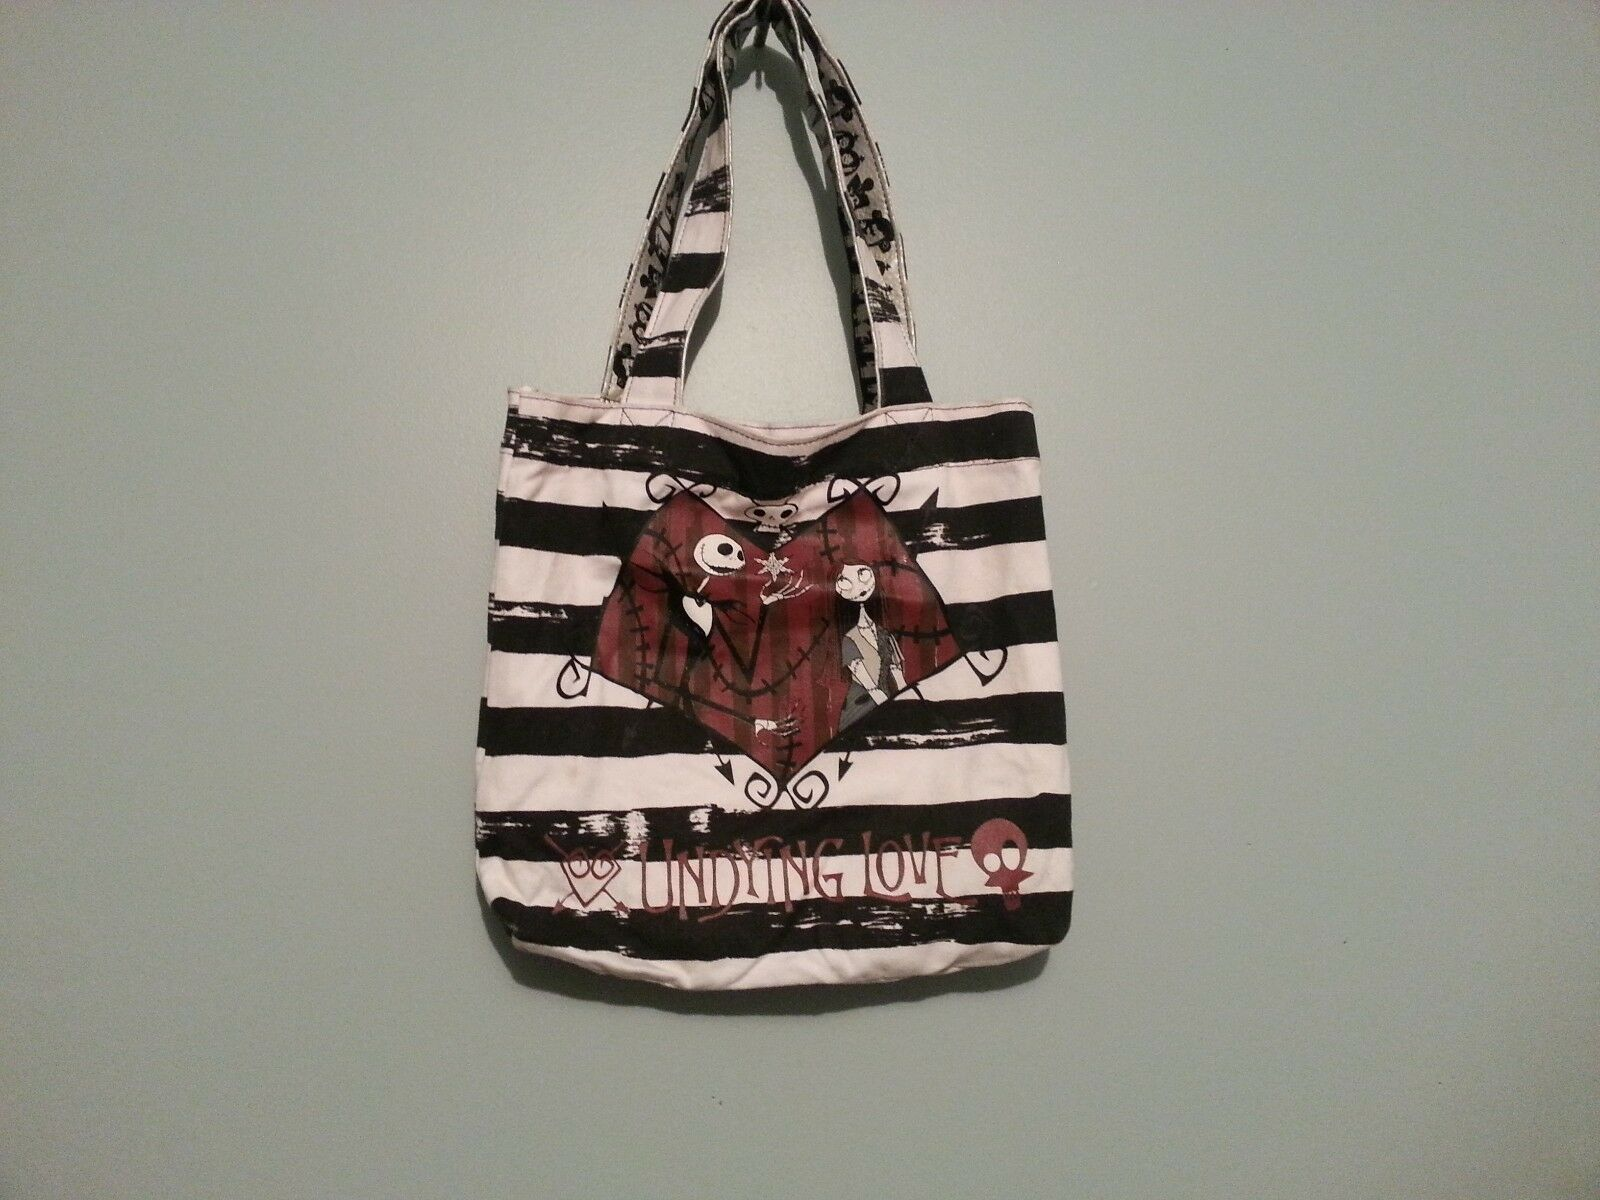 THE NIGHTMARE BEFORE Christmas Purse - $30.00 | PicClick